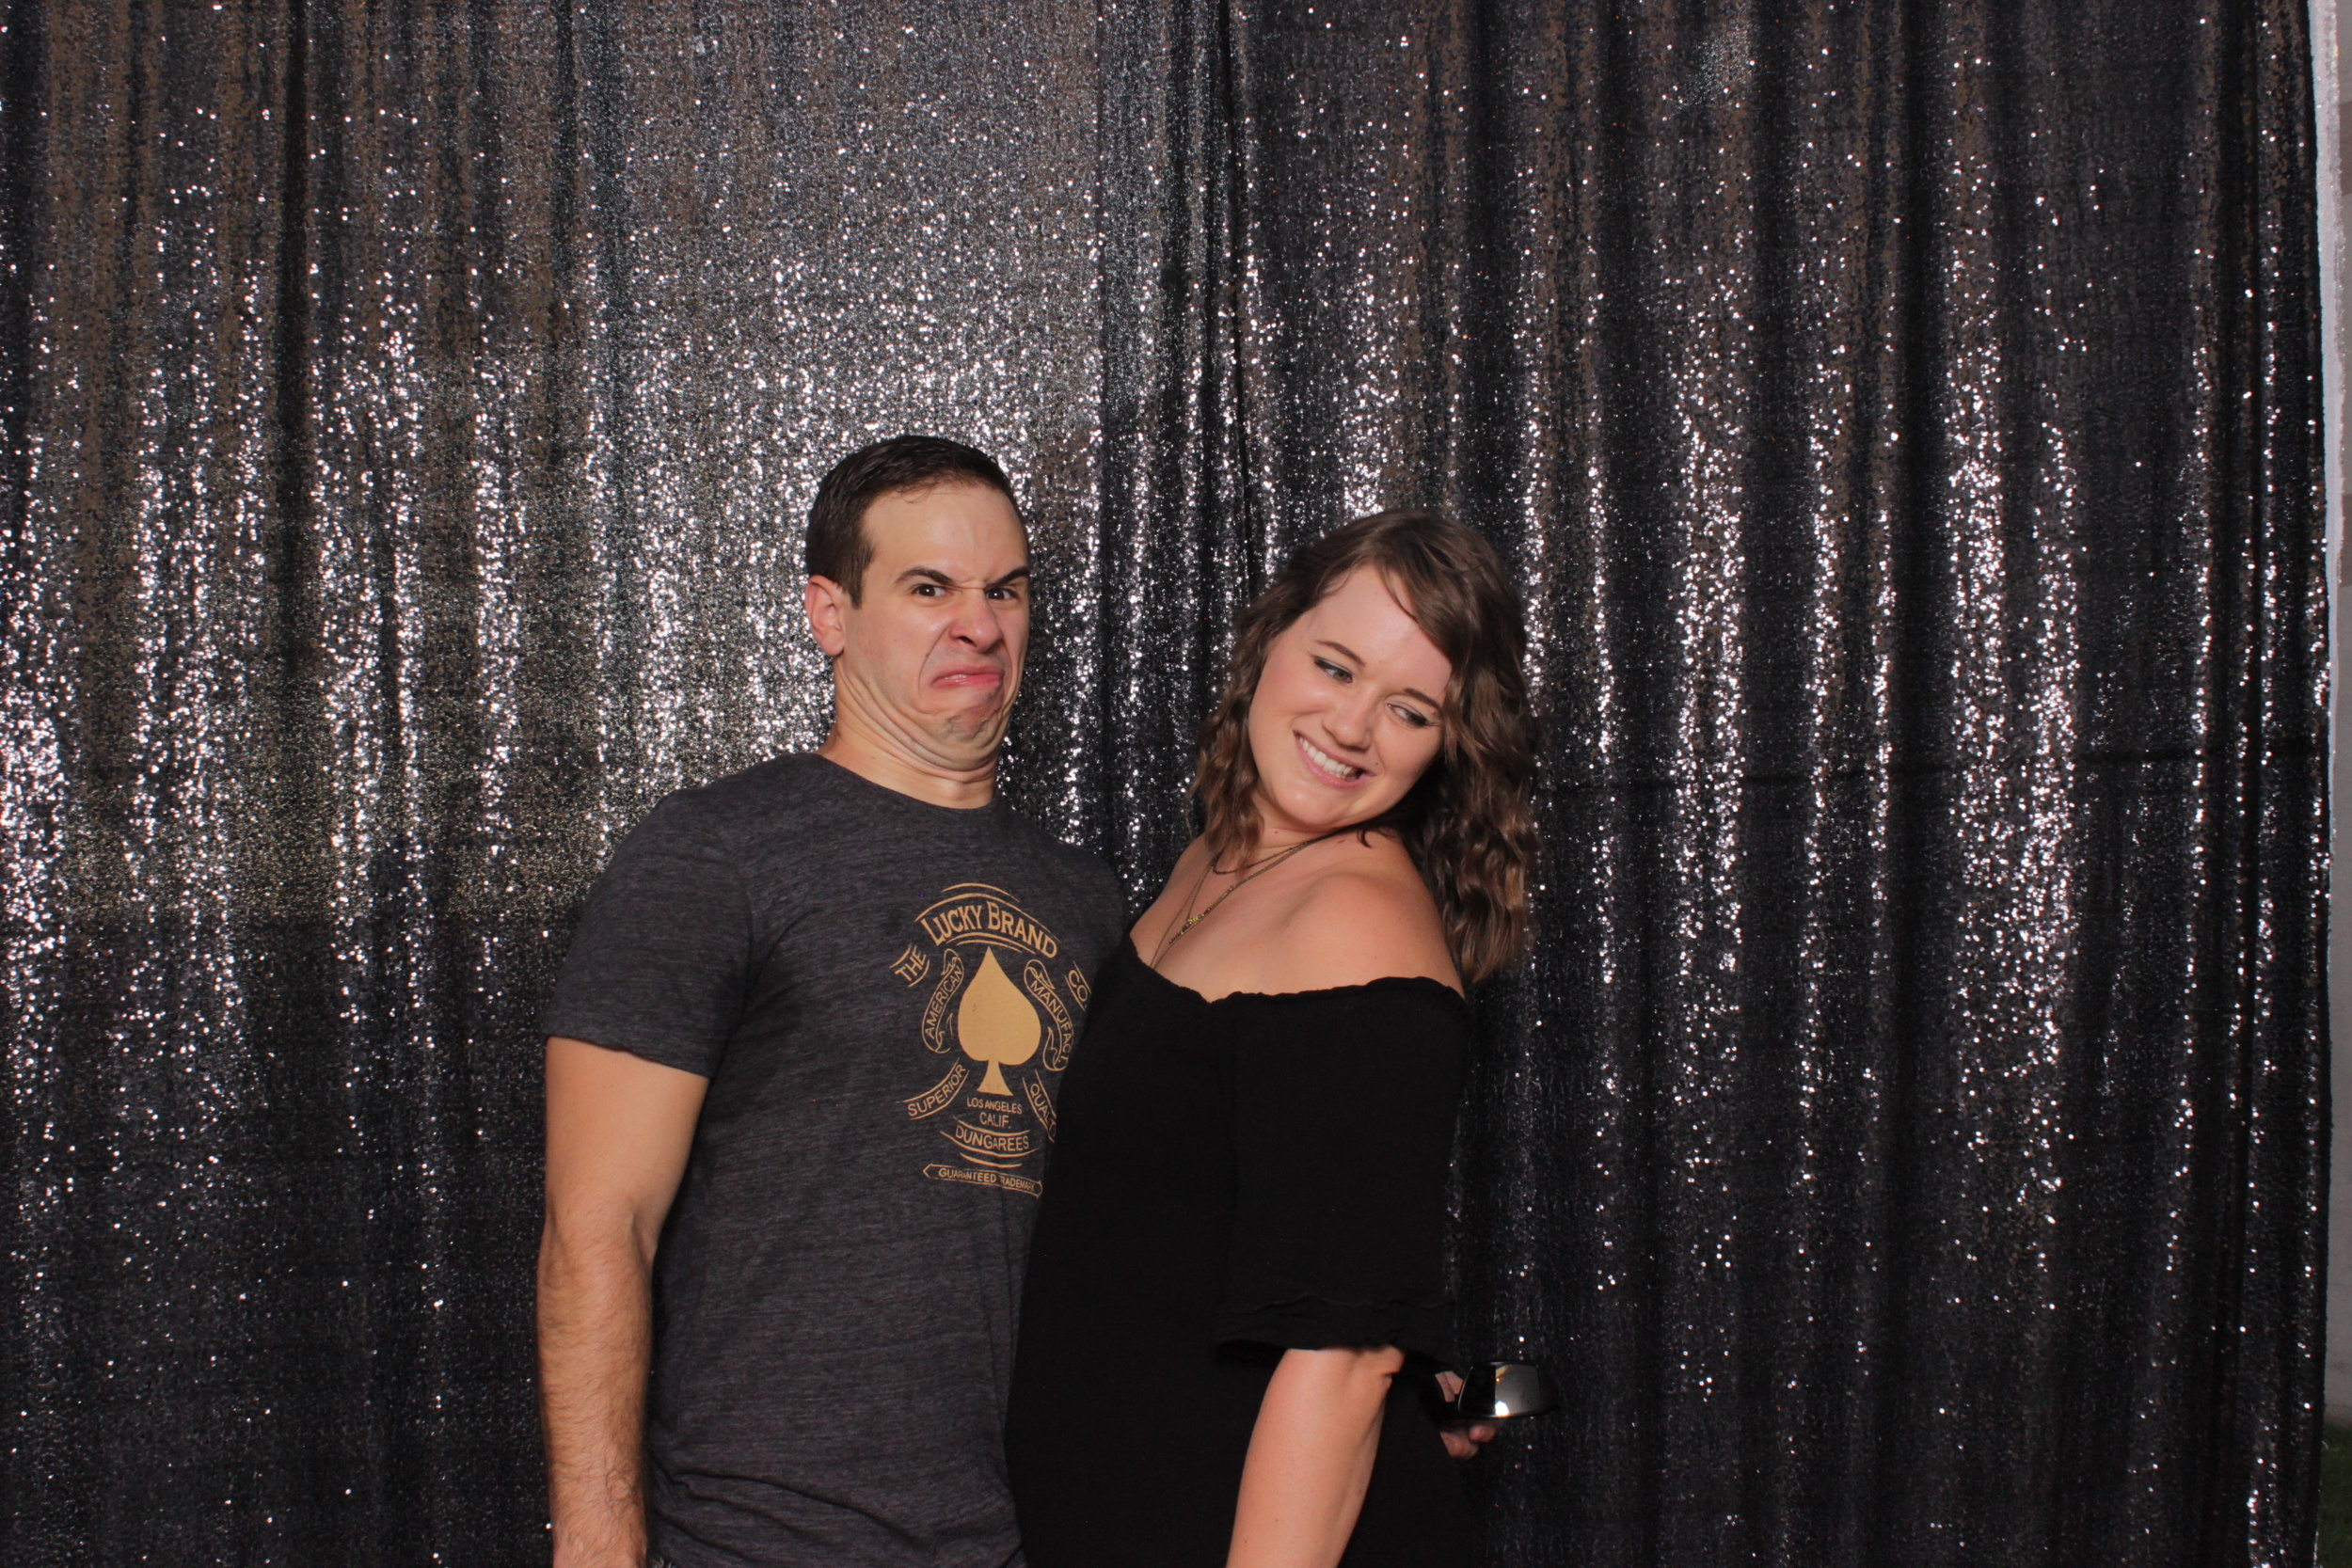 build-corporate-party-photo-booth-rental-fun-couple